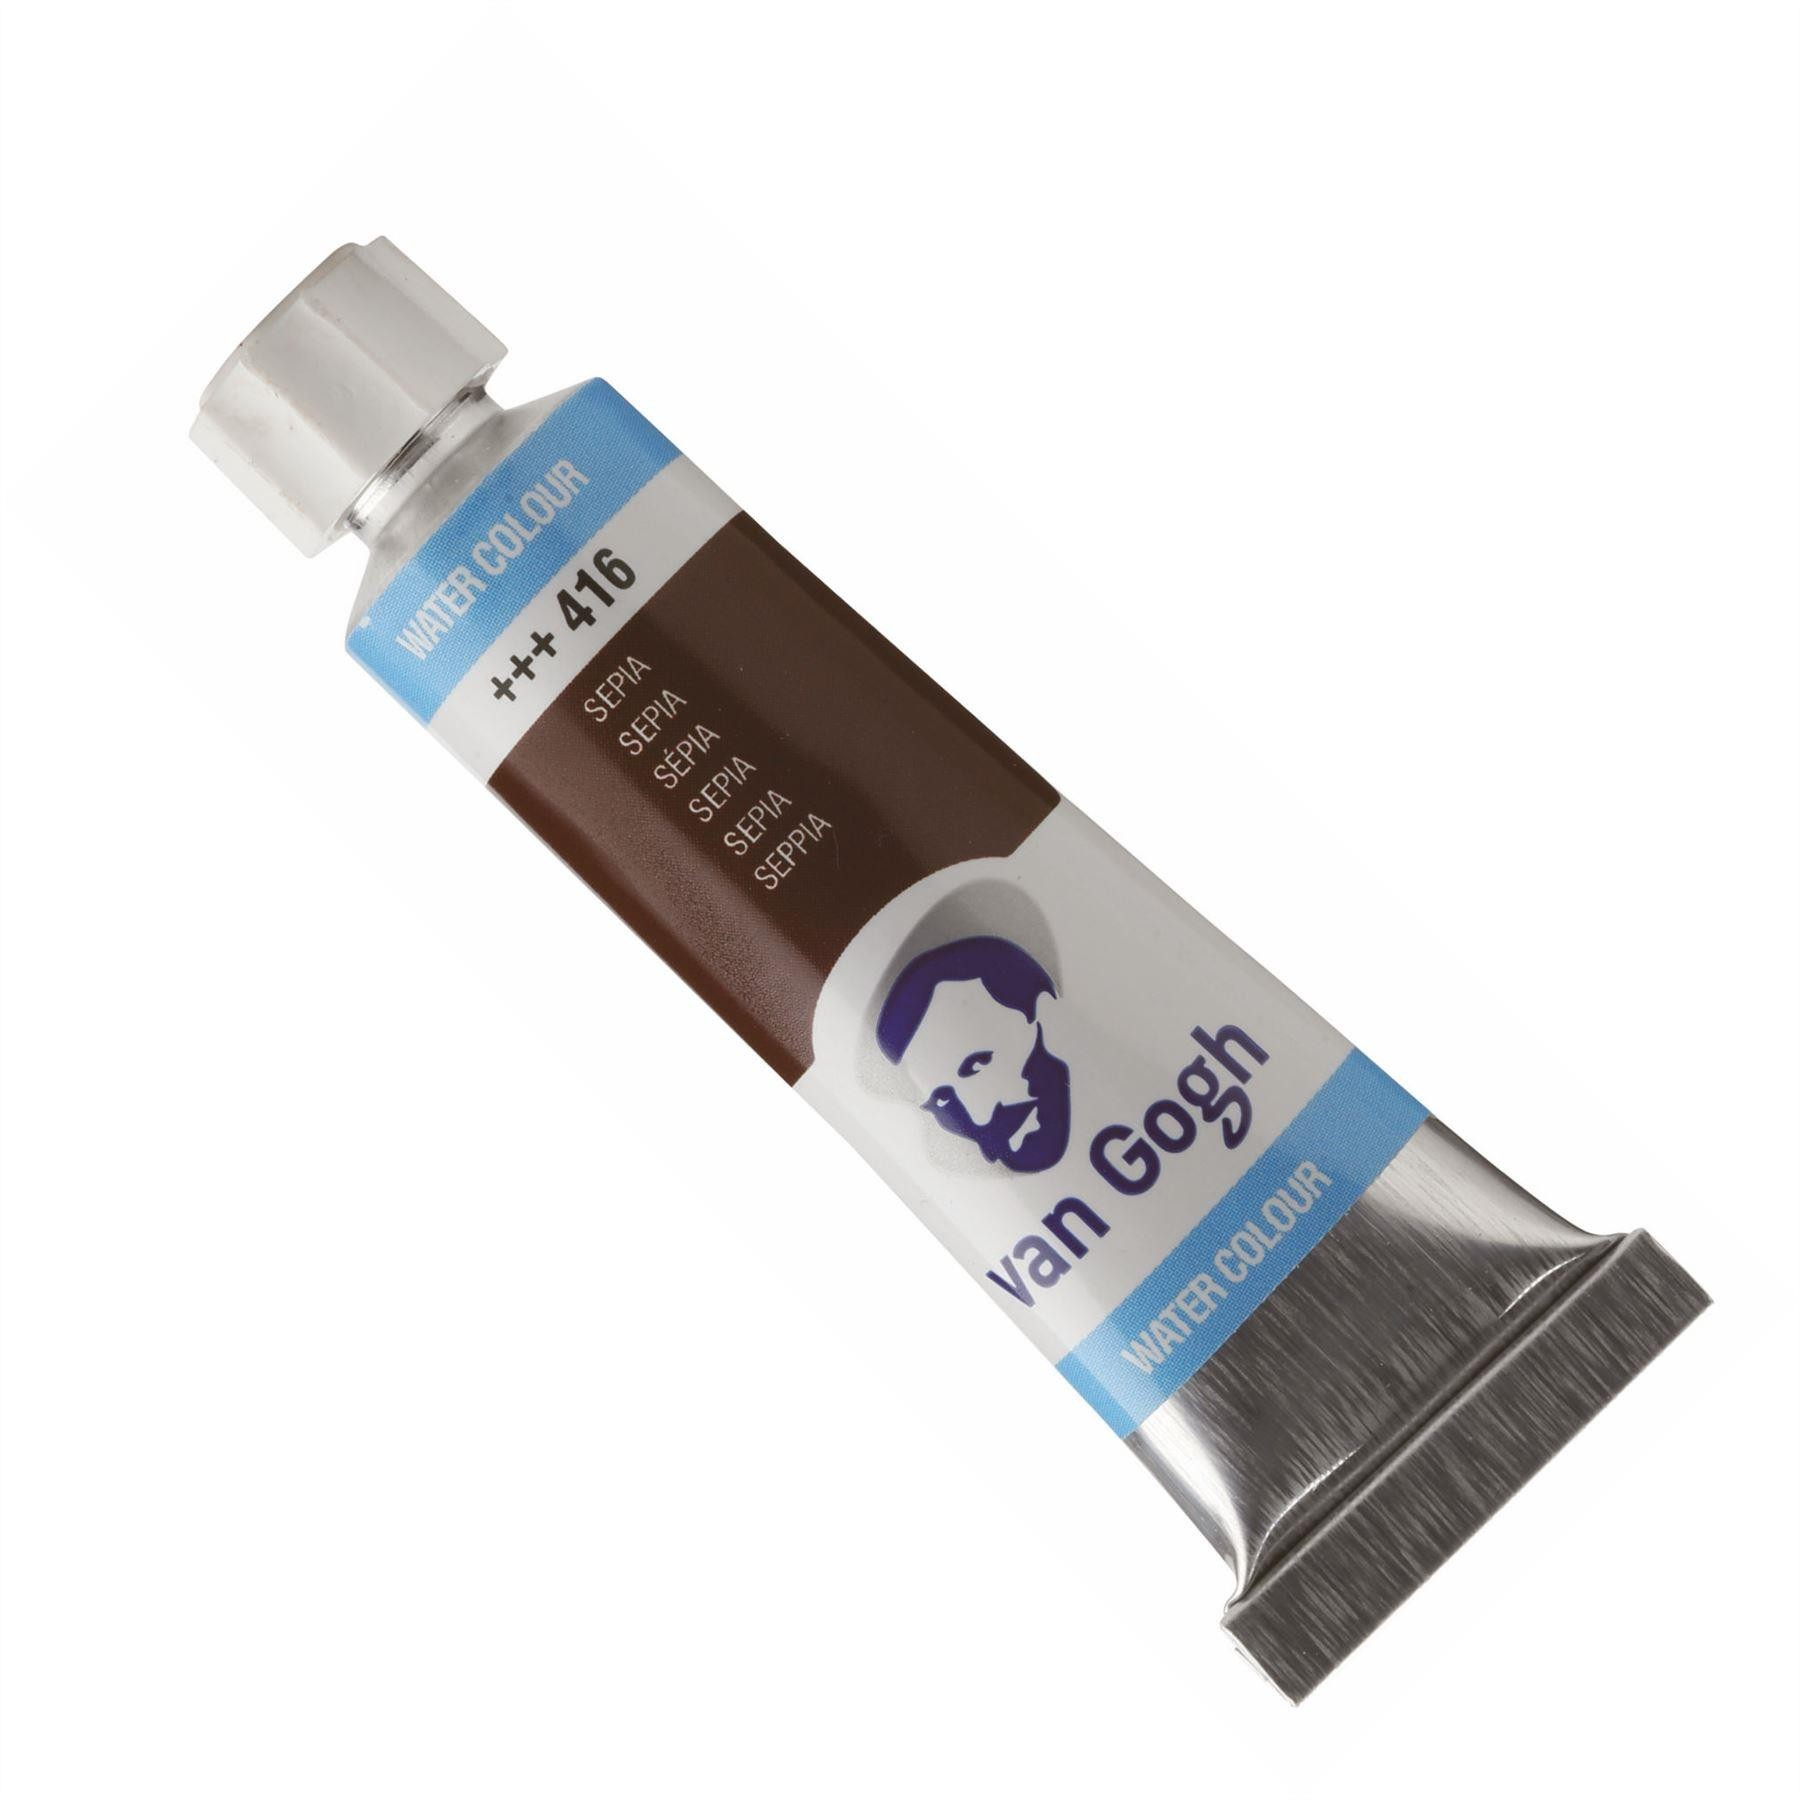 Royal Talens Van Gogh Watercolour Paint Tubes - 10ml Tubes